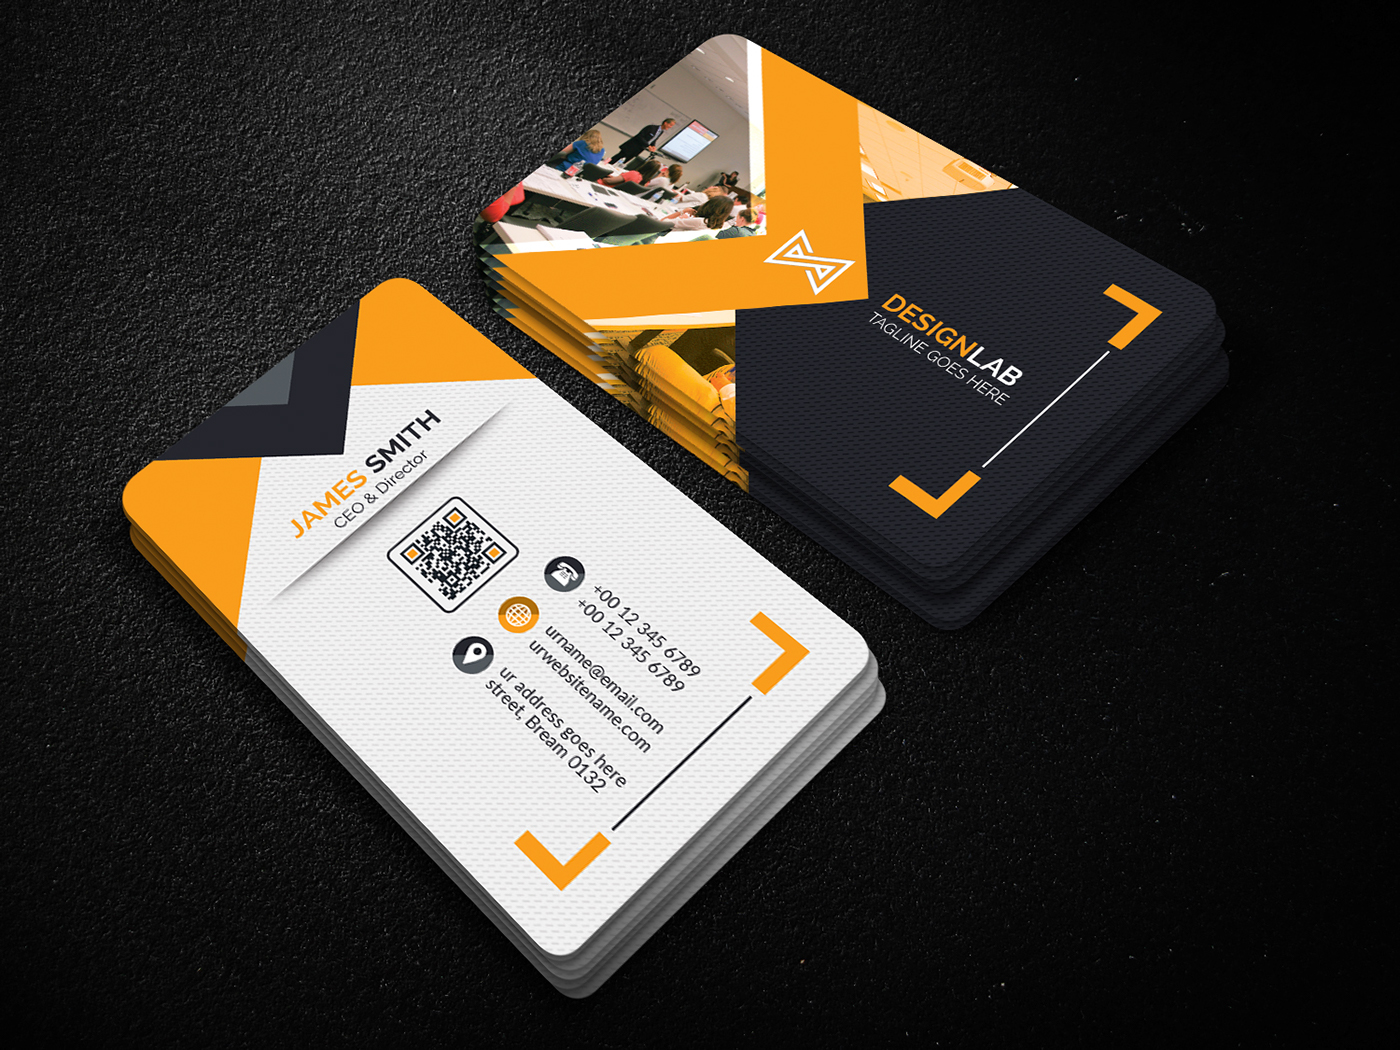 design your 2 sided amazing business card in 10hr for $5 - SEOClerks